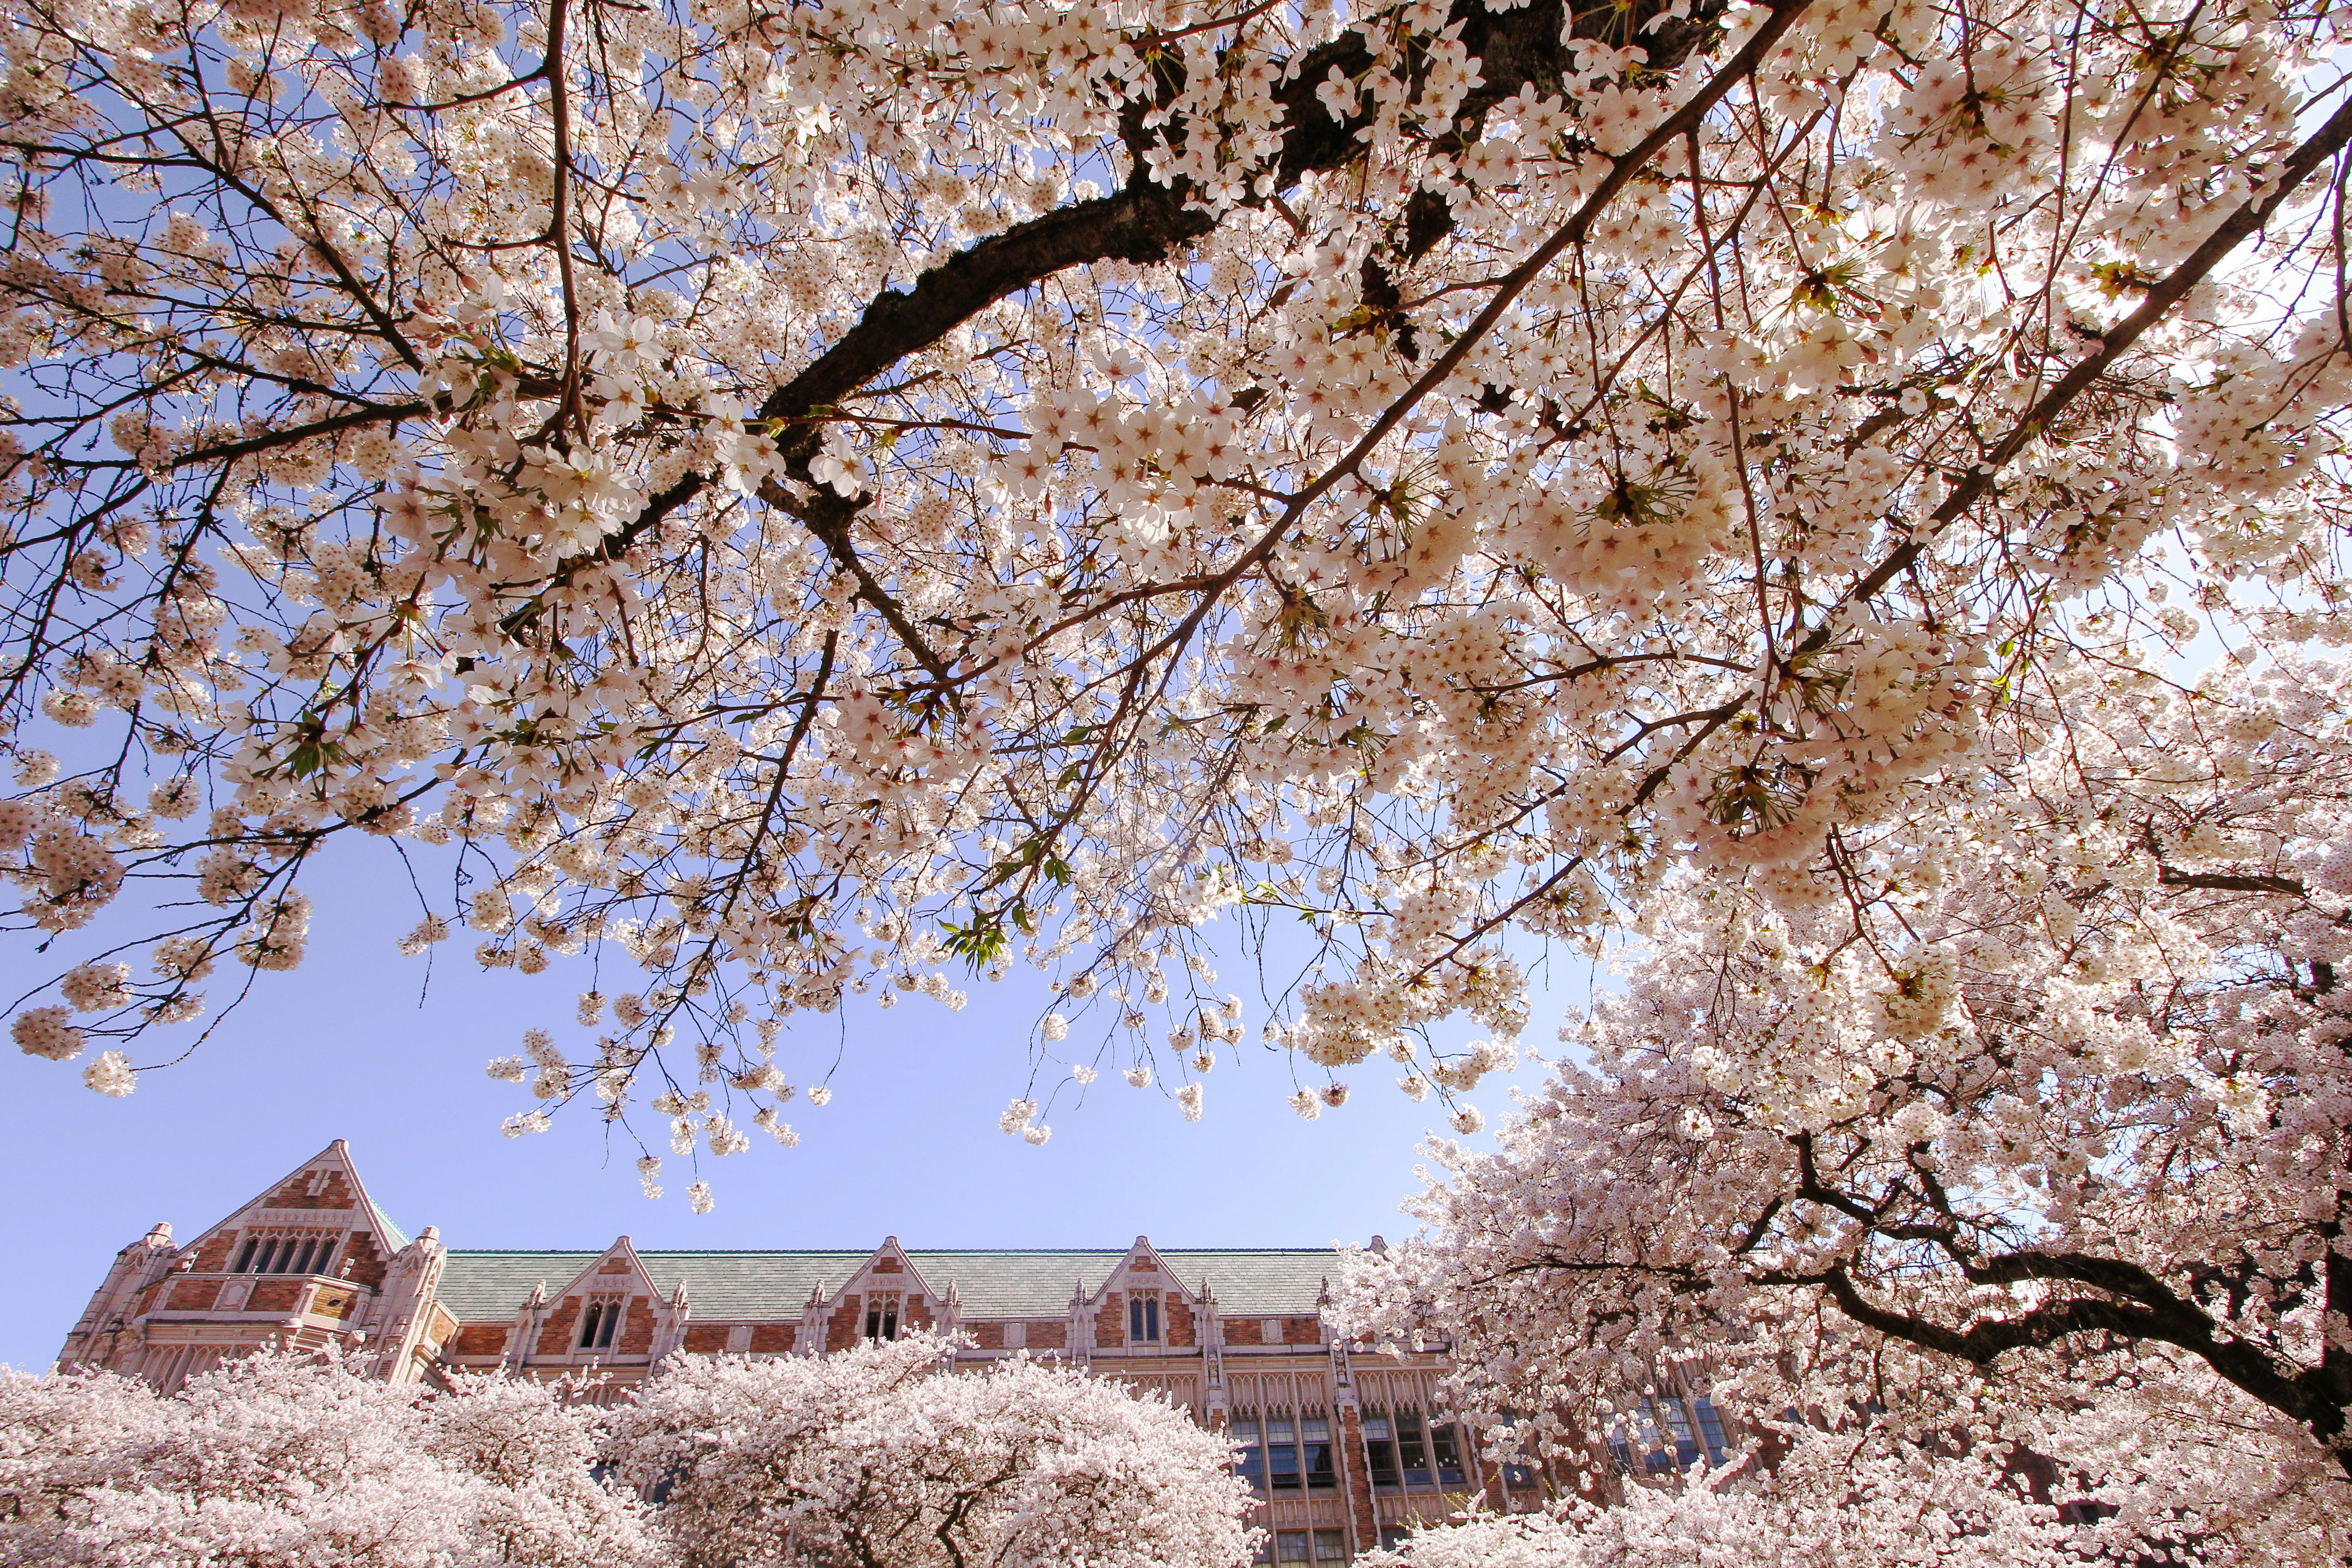 UoW campus during cherry blossom season